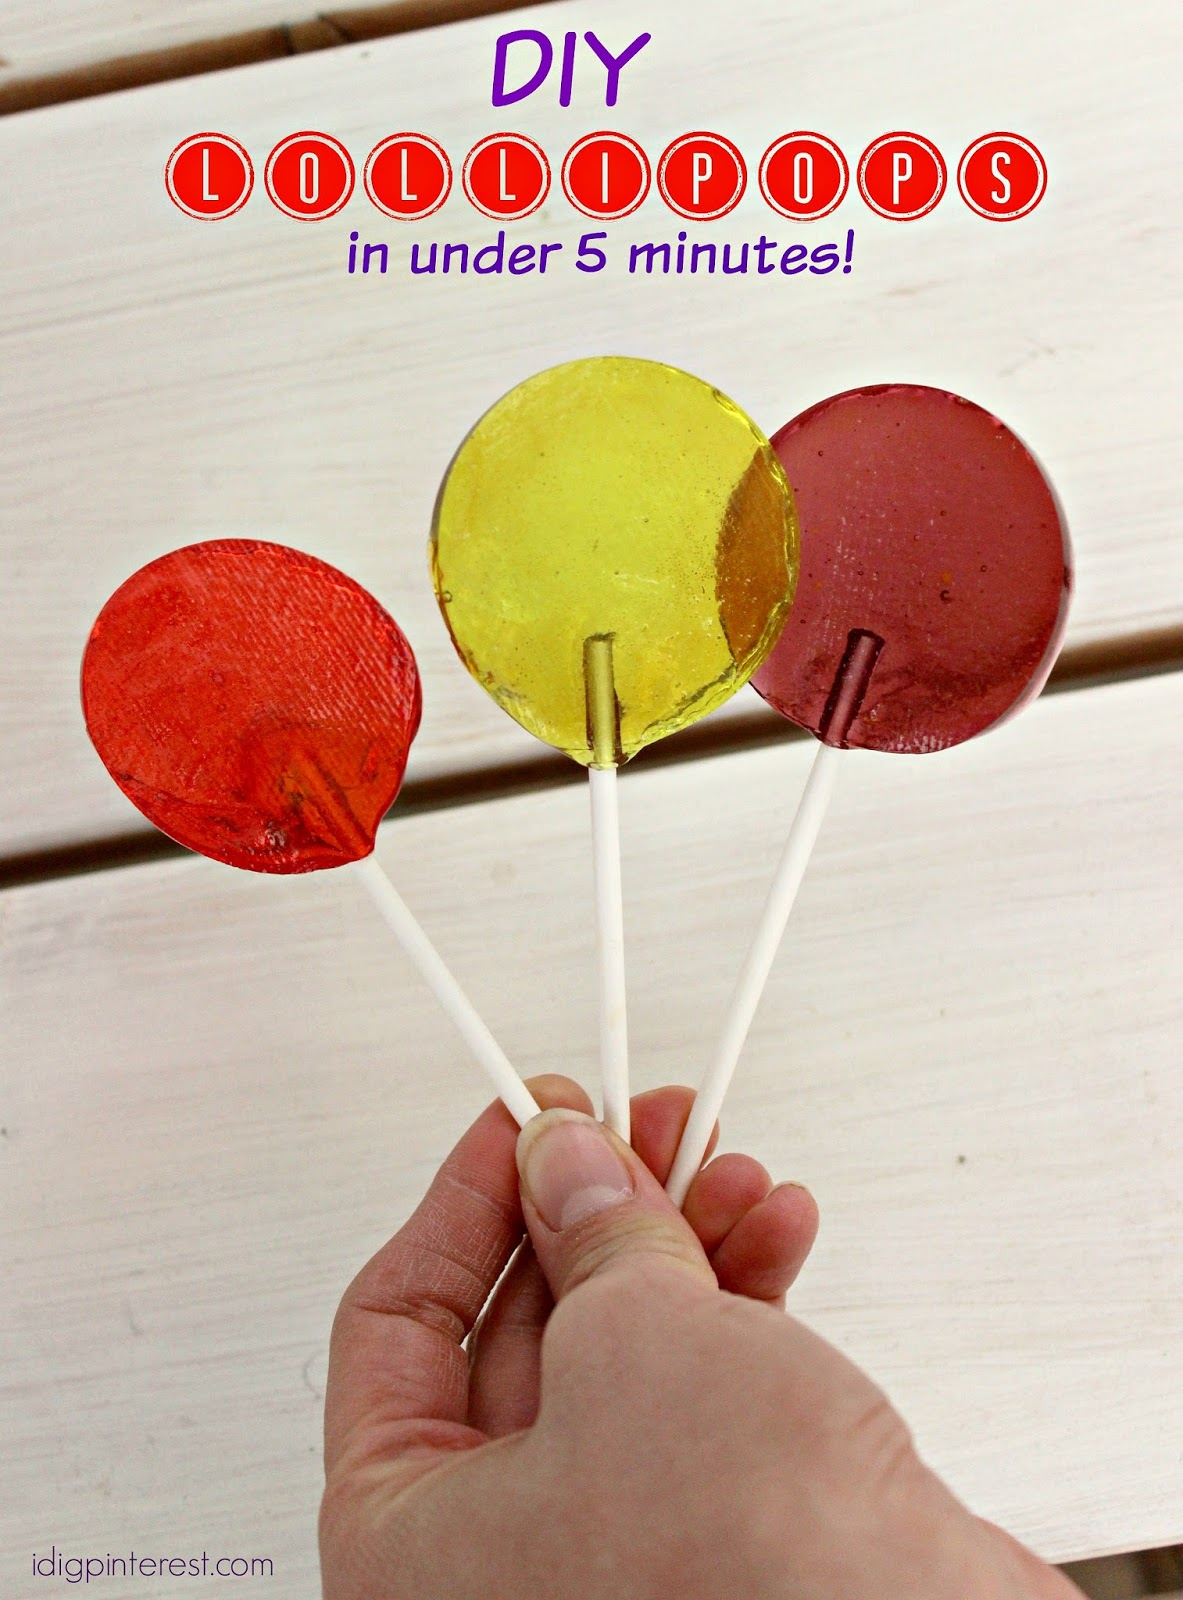 how to make weed lollipops at home